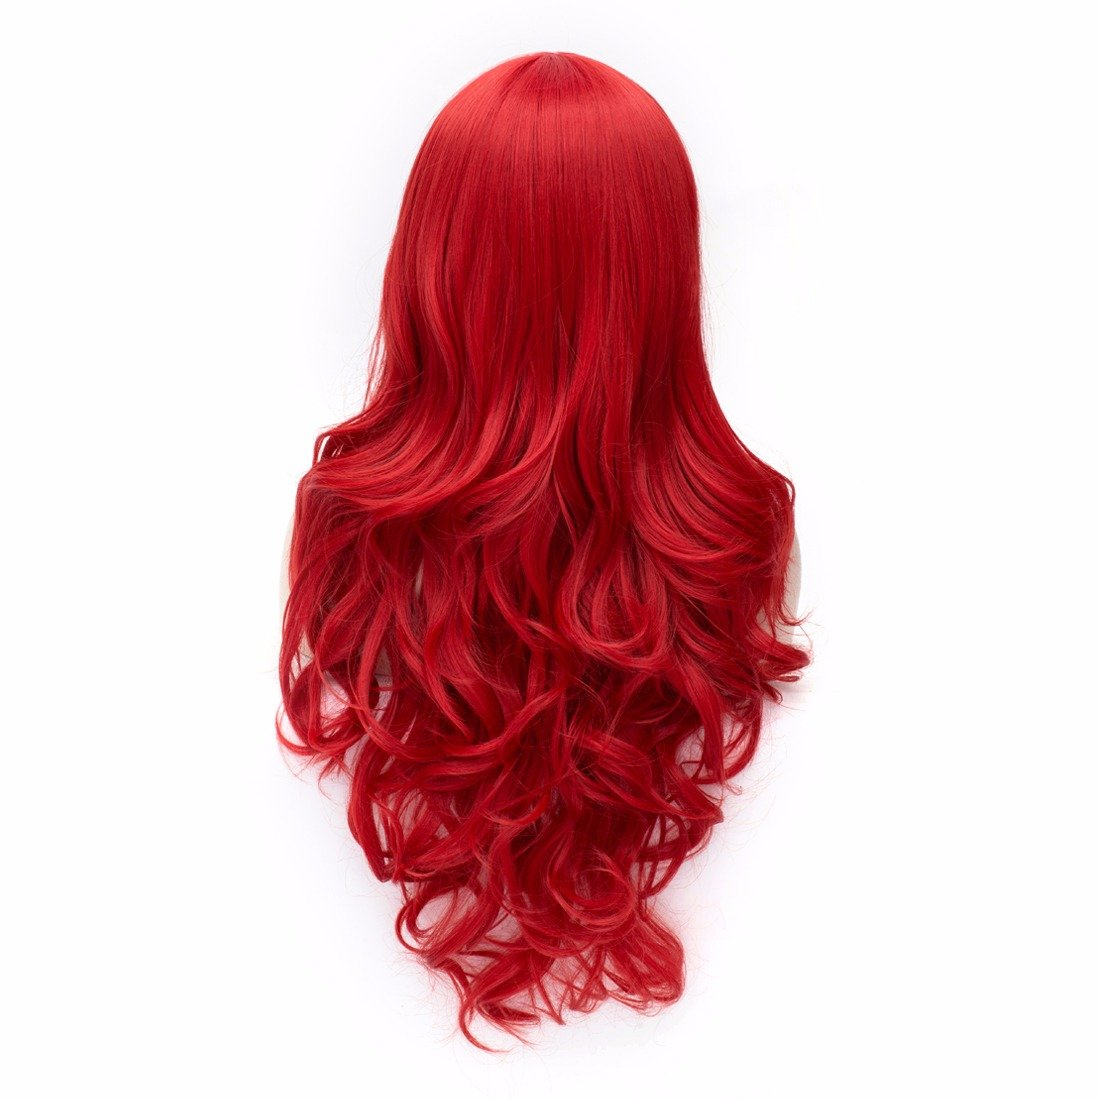 Amazon.com : Red Womens Rame Bangs Anime Long Curly Wavy Fluffy Full Wig Party Cosplay Wigs : Beauty